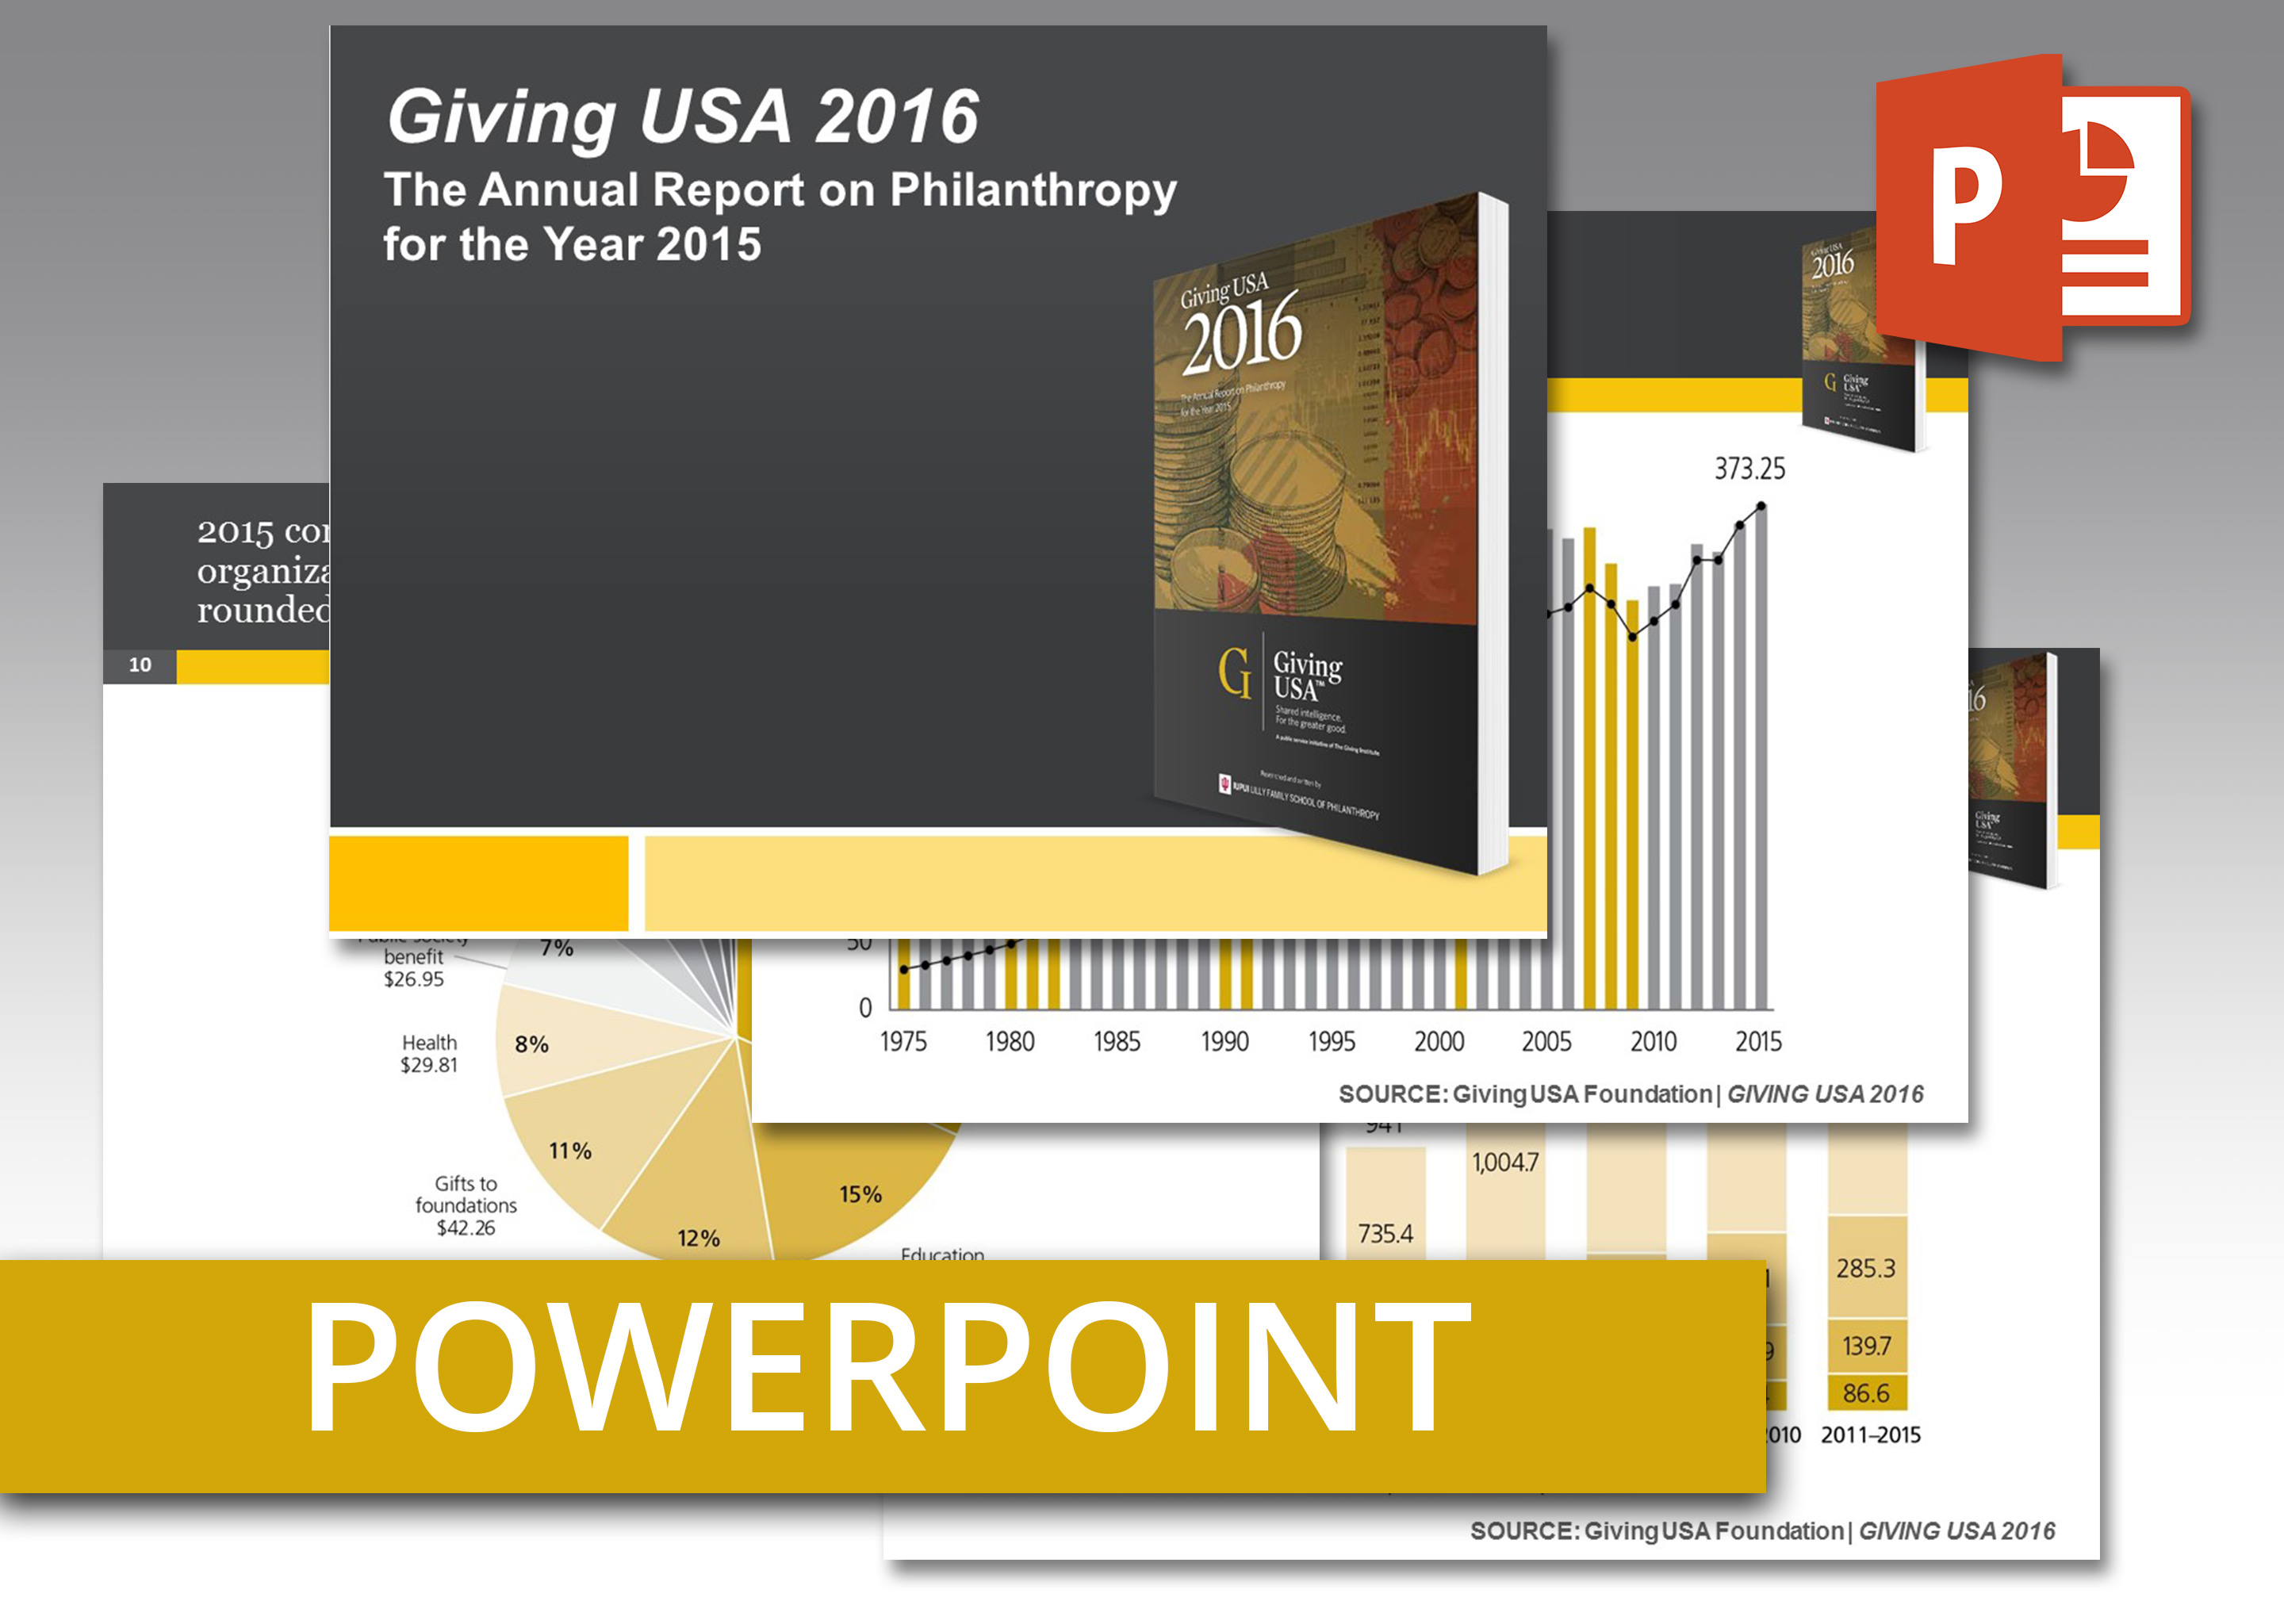 Coolmathgamesus  Sweet Giving Usa  Powerpoint An Easytouse Presentation Of Report  With Fair Giving Usa  Powerpoint An Easytouse Presentation Of Report Findings Including Talking Points With Extraordinary Use Of Force Continuum Powerpoint Also Design Powerpoint In Addition How To Make A Google Doc Powerpoint And Master Slide In Powerpoint As Well As Supply And Demand Powerpoint Additionally Jeopardy In Powerpoint From Givingusaorg With Coolmathgamesus  Fair Giving Usa  Powerpoint An Easytouse Presentation Of Report  With Extraordinary Giving Usa  Powerpoint An Easytouse Presentation Of Report Findings Including Talking Points And Sweet Use Of Force Continuum Powerpoint Also Design Powerpoint In Addition How To Make A Google Doc Powerpoint From Givingusaorg